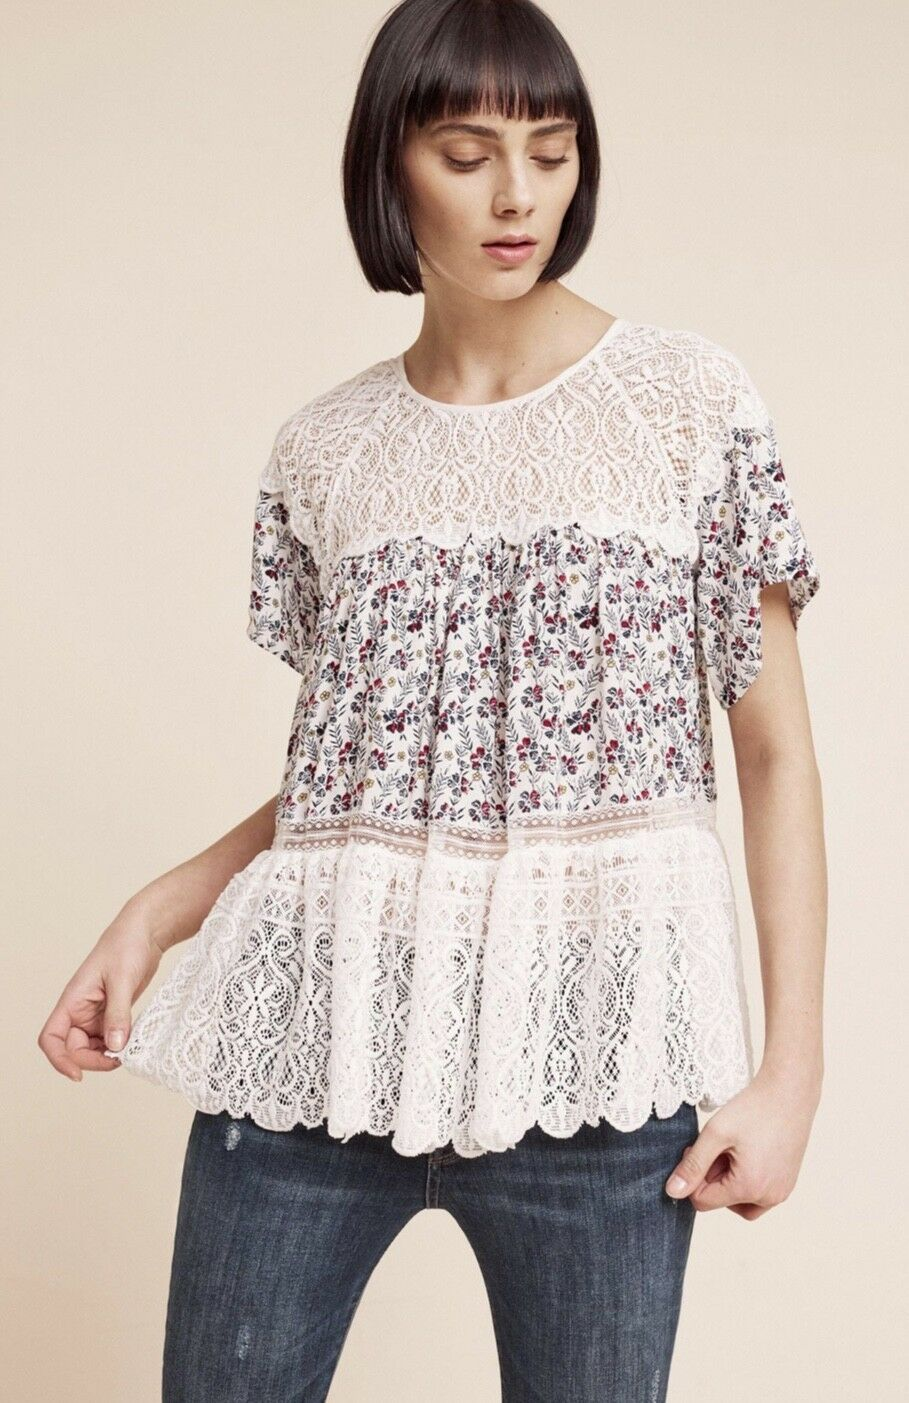 NEW Anthropologie ivory Floral Lace Ruffle Tierot Swing Blouse Top S